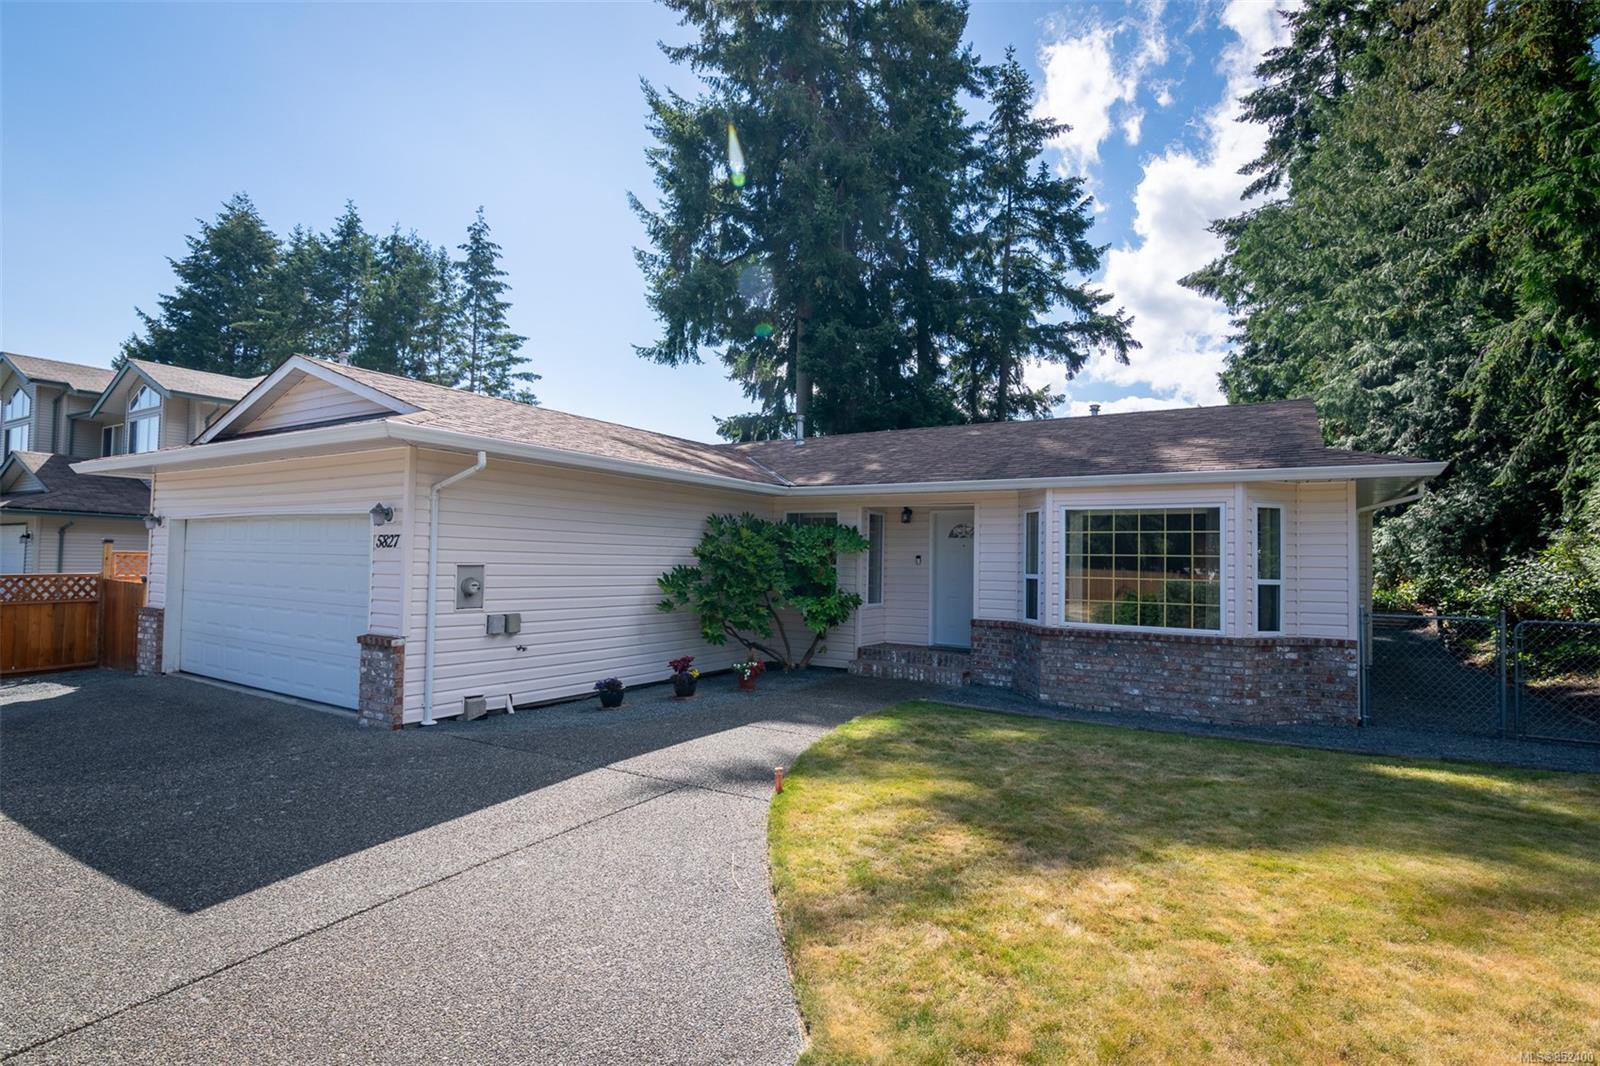 Main Photo: 5827 Brookwood Dr in : Na Uplands Single Family Detached for sale (Nanaimo)  : MLS®# 852400